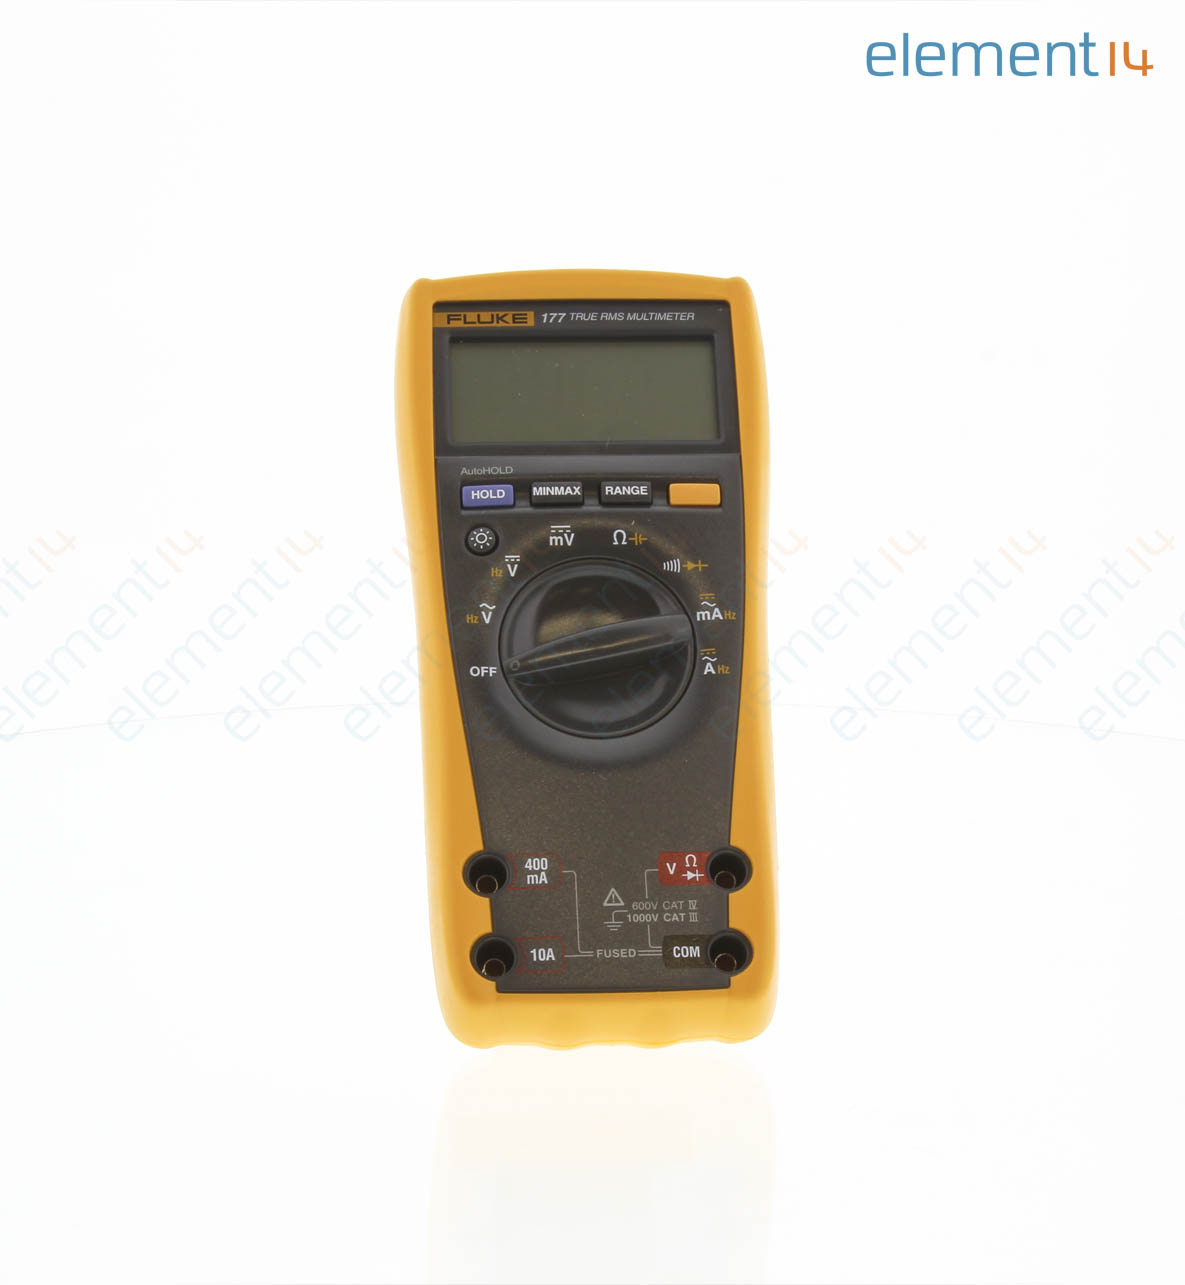 fluke 177 esfp fluke handheld digital multimeter 170 series rh newark com Fluke Model 177 Fluke 177 Parts List